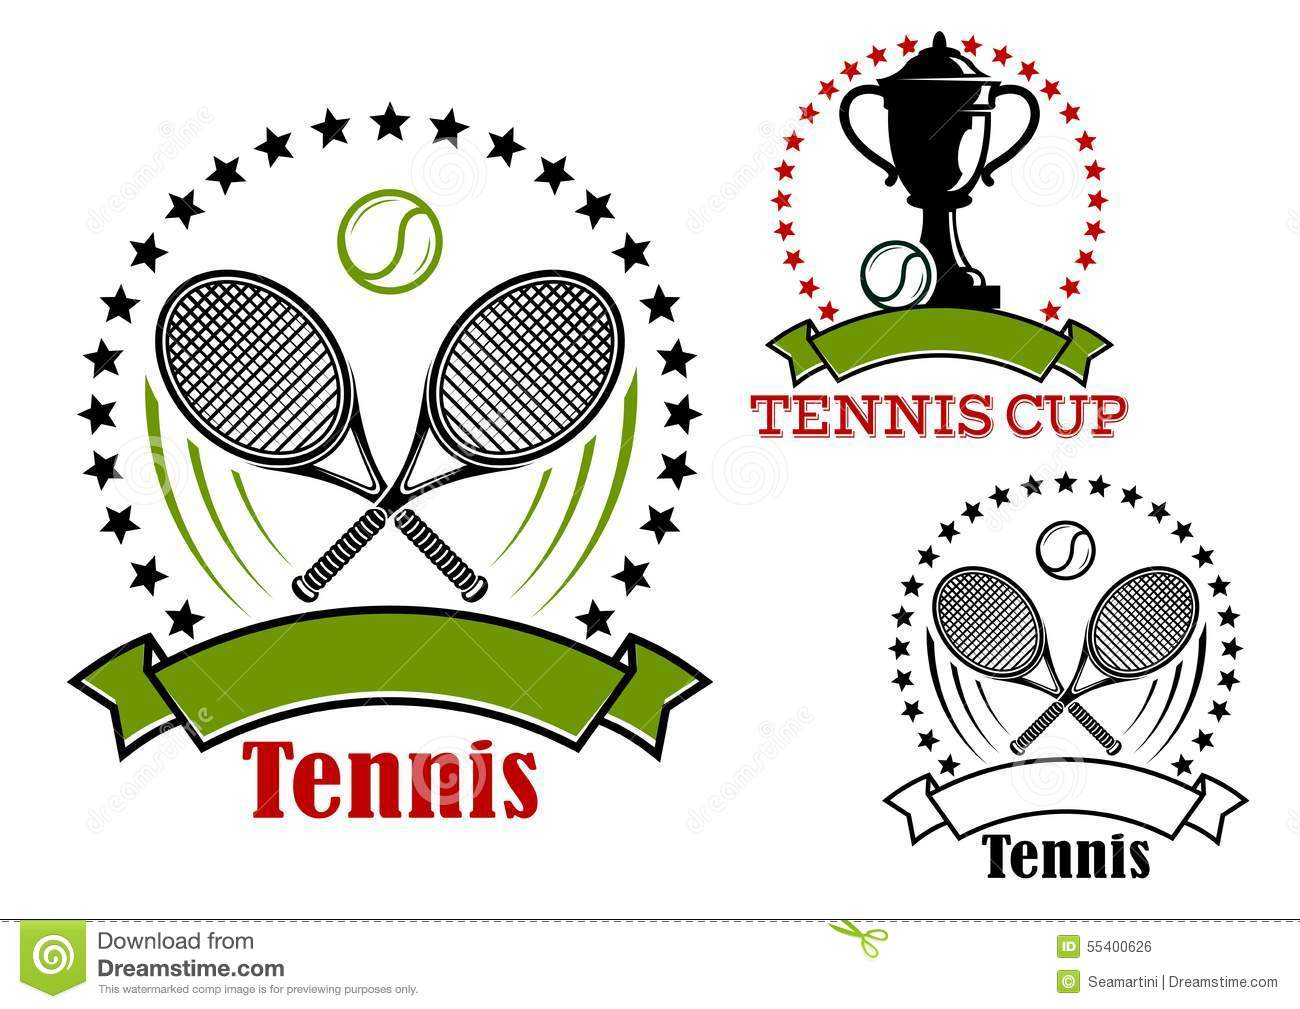 label the united states map game with Stock Illustration Tennis Emblems Balls Rackets Cup Game Logo Design Crossed Trophy Framed Stars Blank Ribbon Banners Image55400626 on Post state Capitals Worksheets Answers 74672 moreover Si Gambar Anime Hitam Putih additionally Weird But True State Facts That You May Not Already Know additionally Humanities Term III besides Usa States.